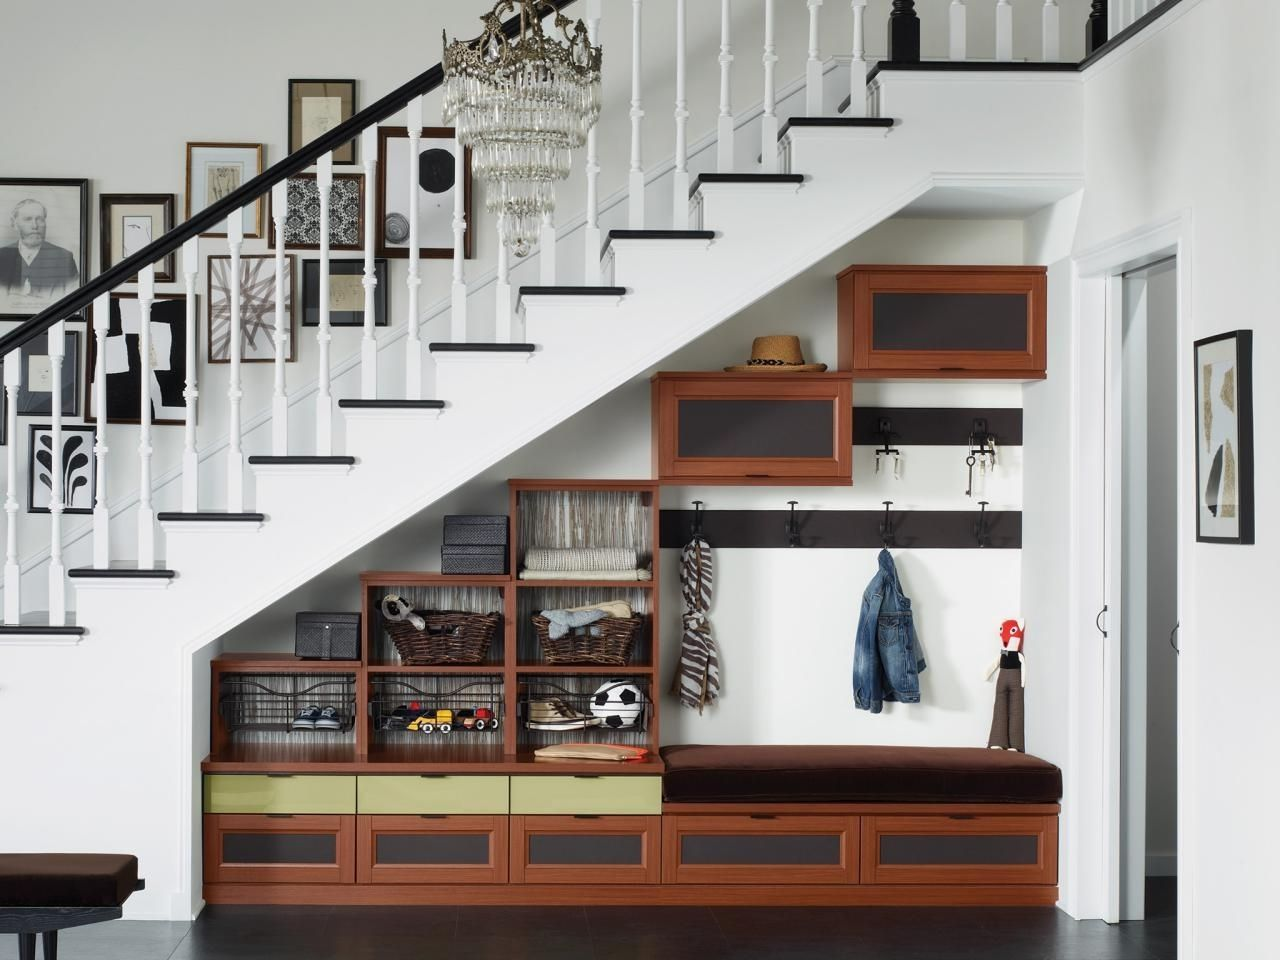 Adding cubbies shelving or hanging space under a staircase provides storage in an otherwise unused space and creates a designated spot for rain boots